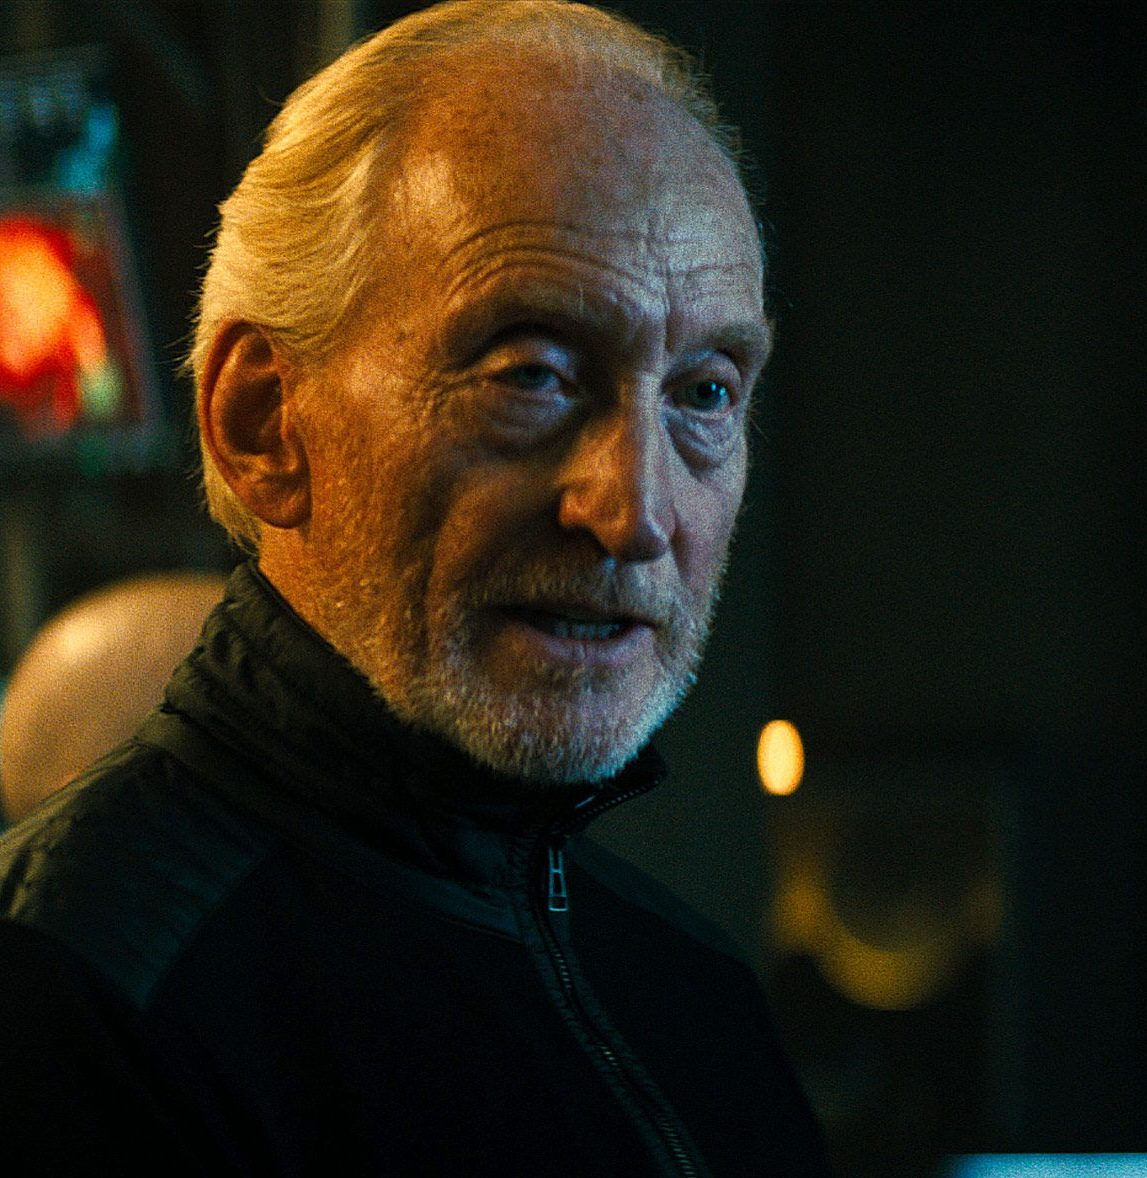 charles dance godzilla king of monsters 1559125278 e1581522917862 20 Embarrassing Movie Roles Actors Just Can't Escape